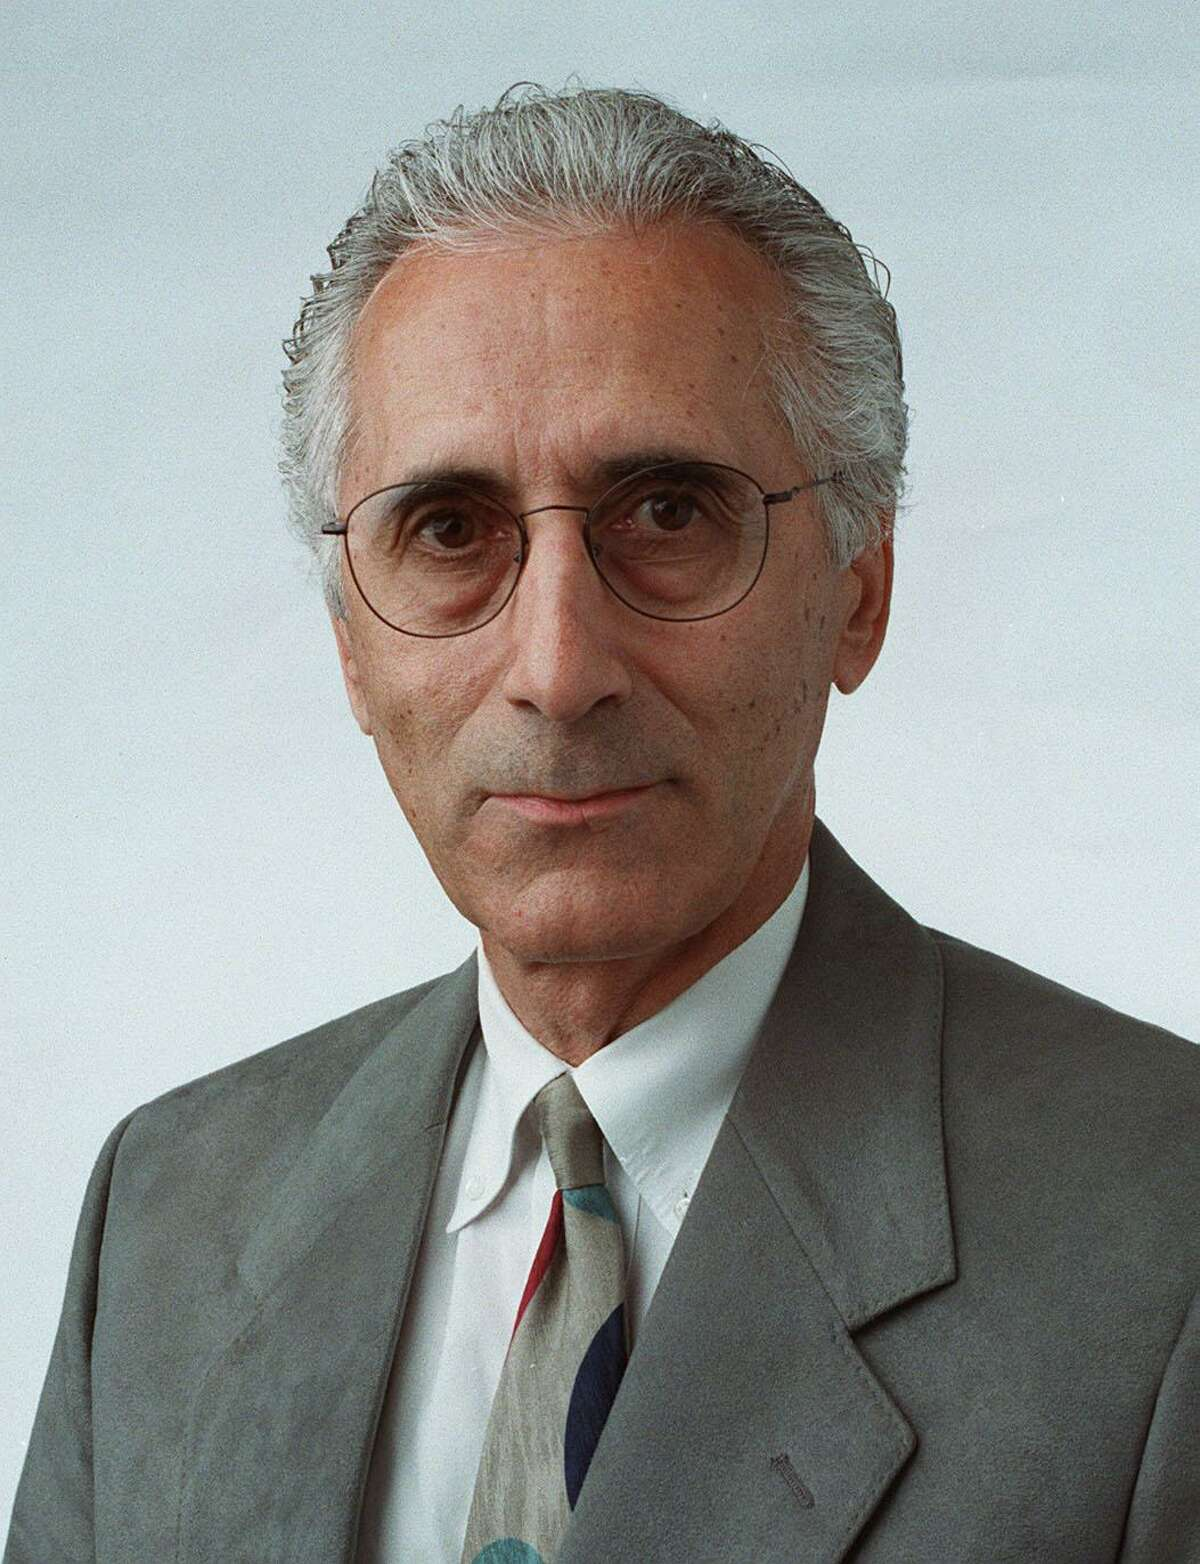 Bert Cecconi, candidate for district 8 City Council